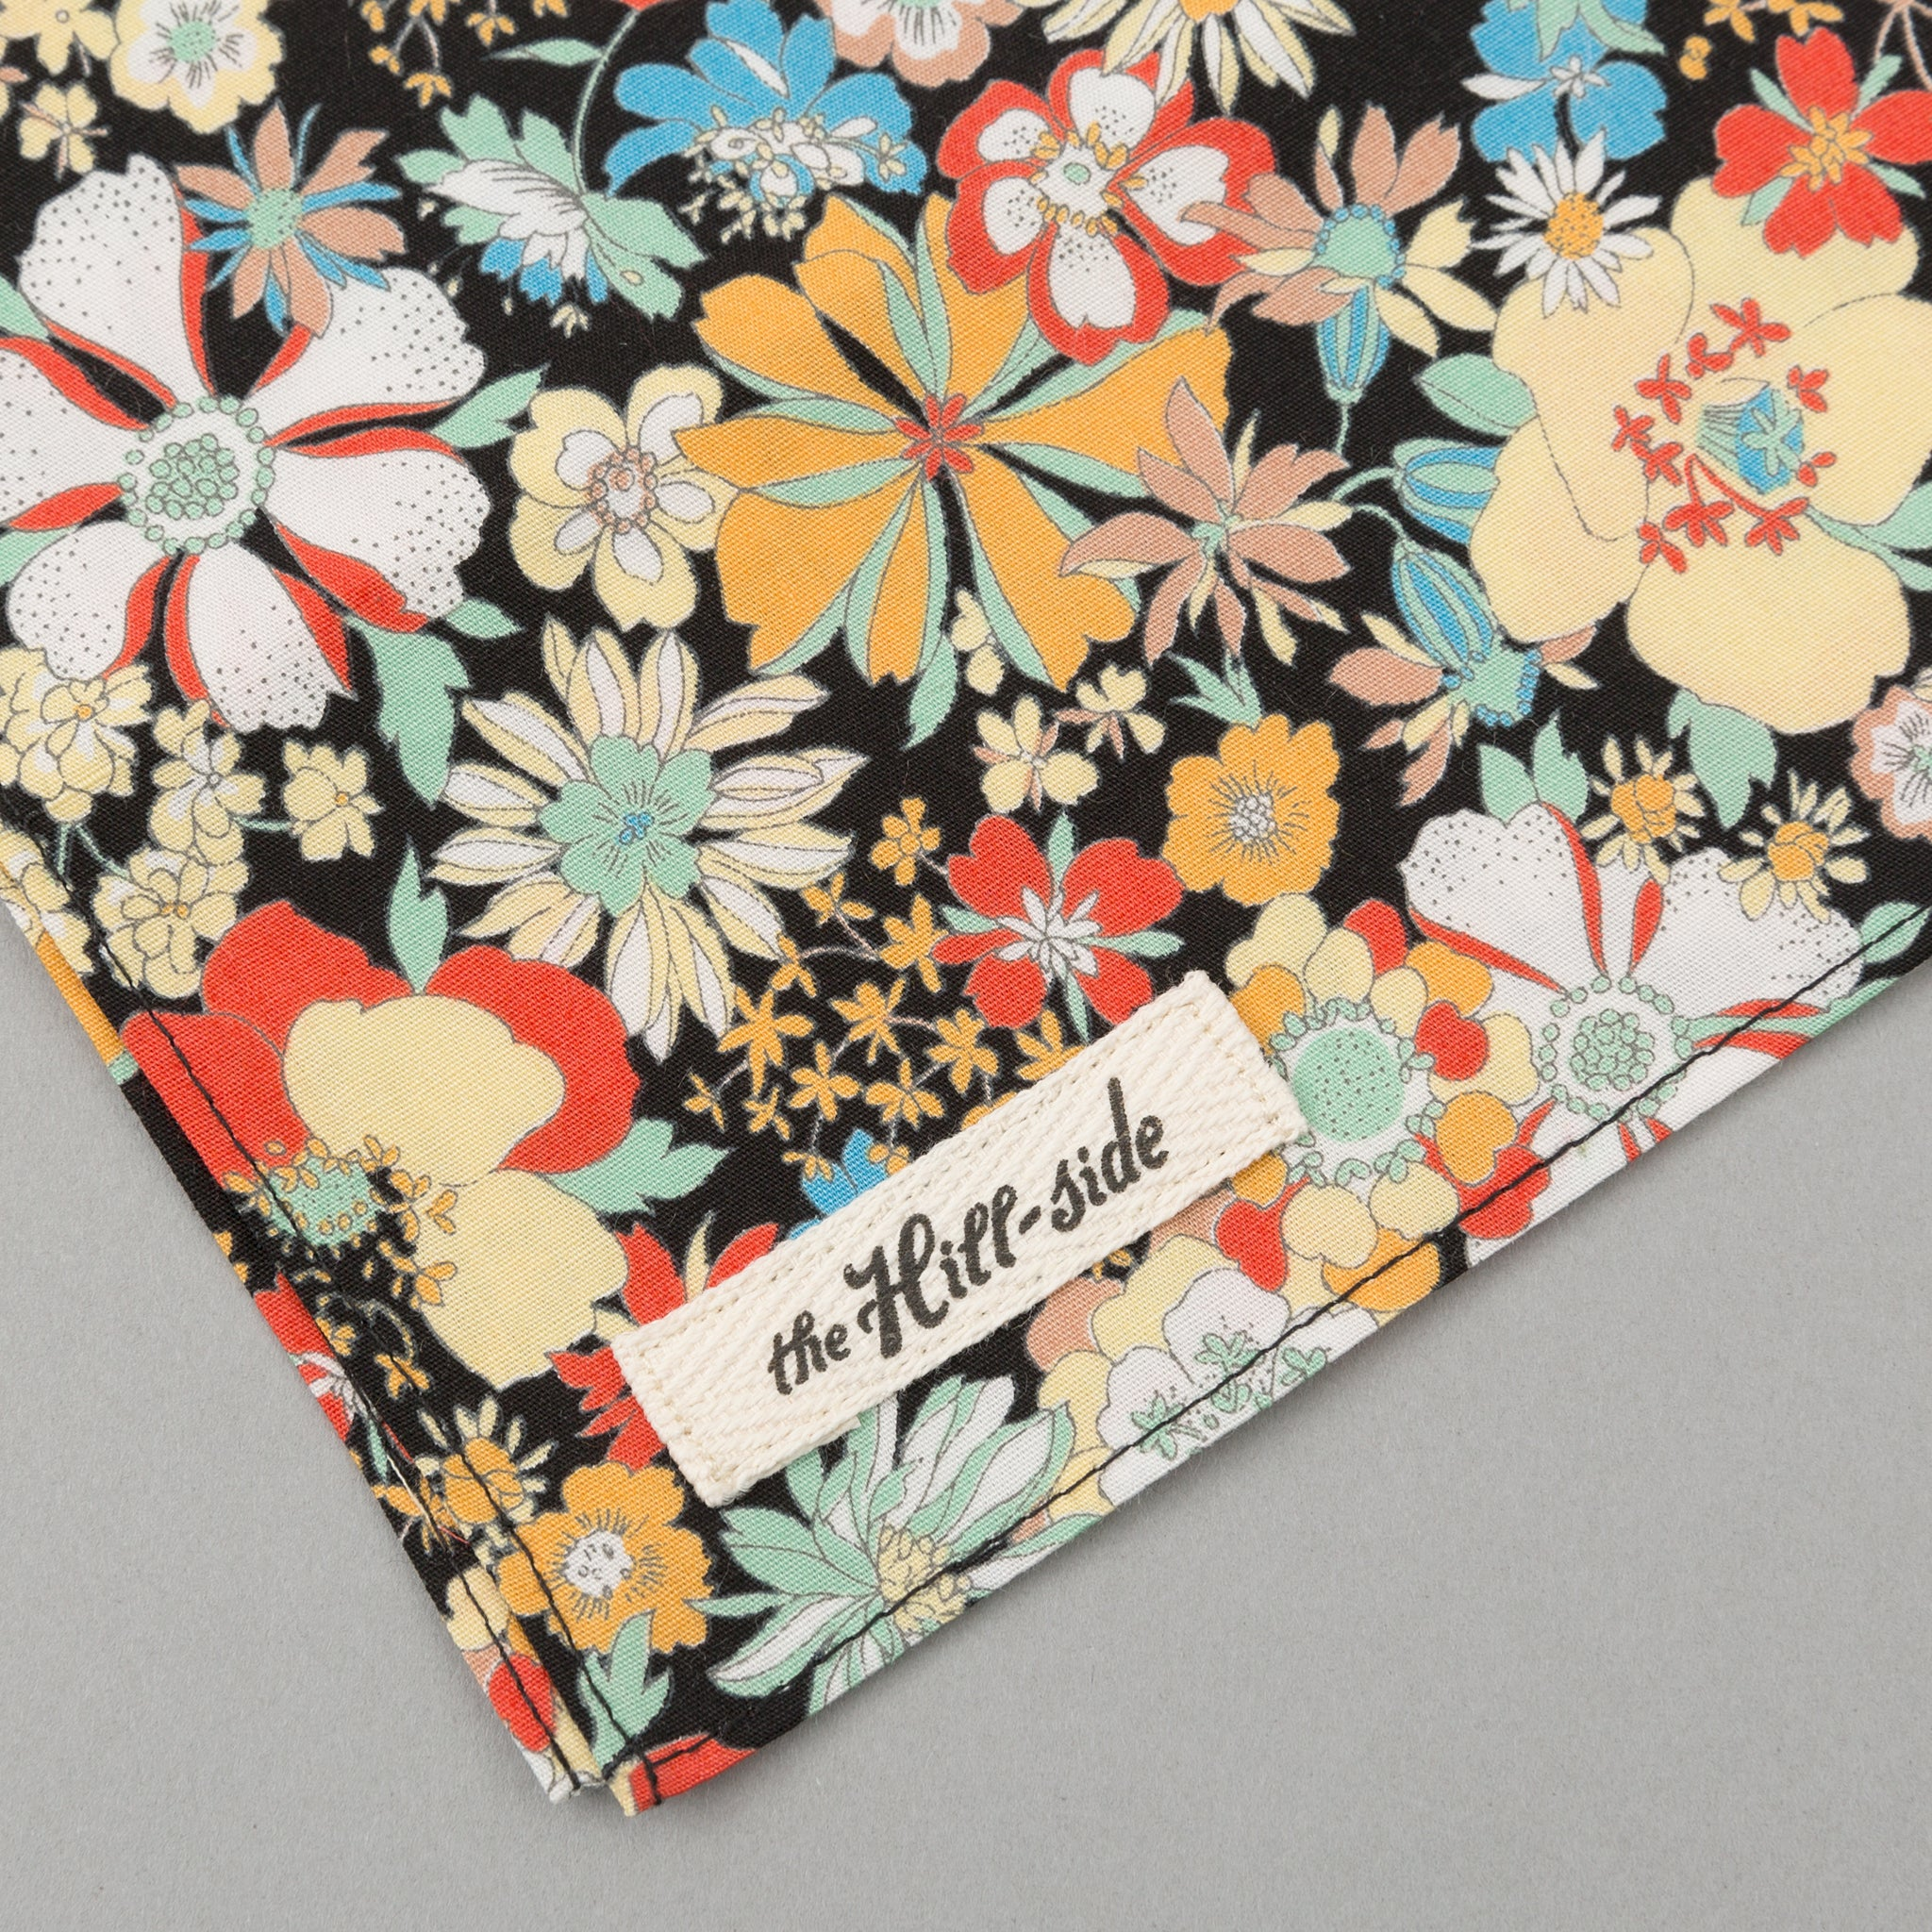 The Hill-Side - Psychedelic Floral Print Bandana, Black - BA1-489 - image 1